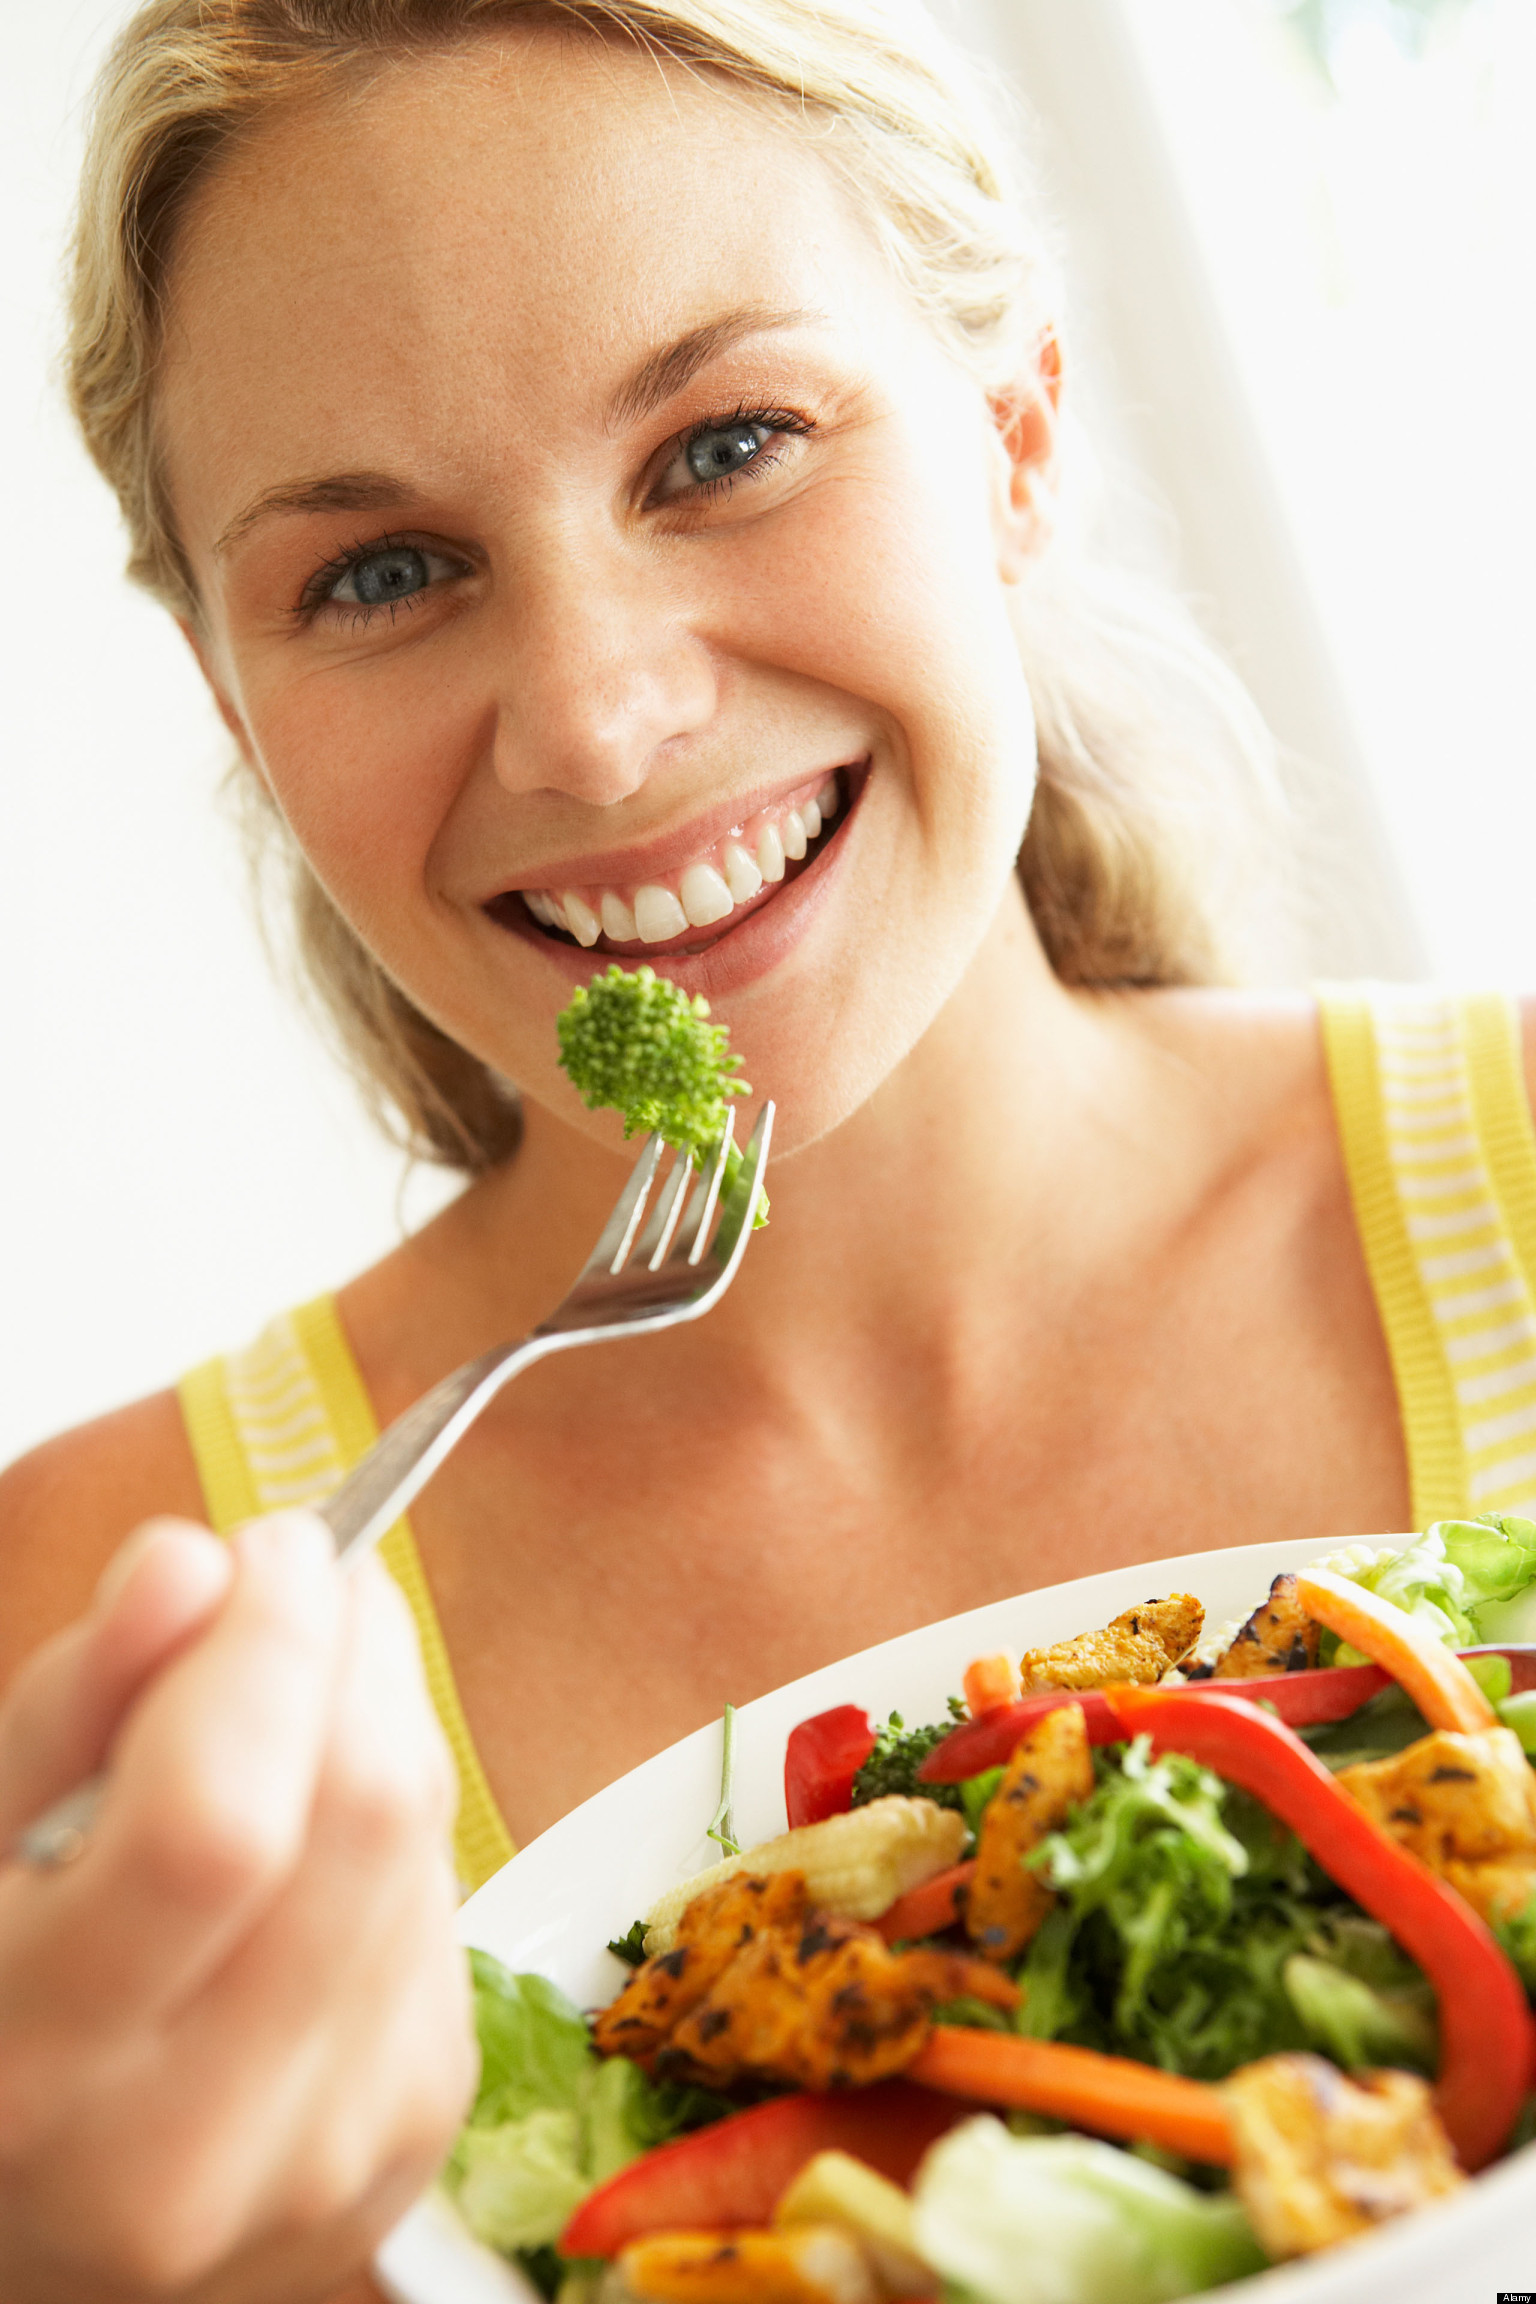 Does Eating Healthy Enhance Your Mood